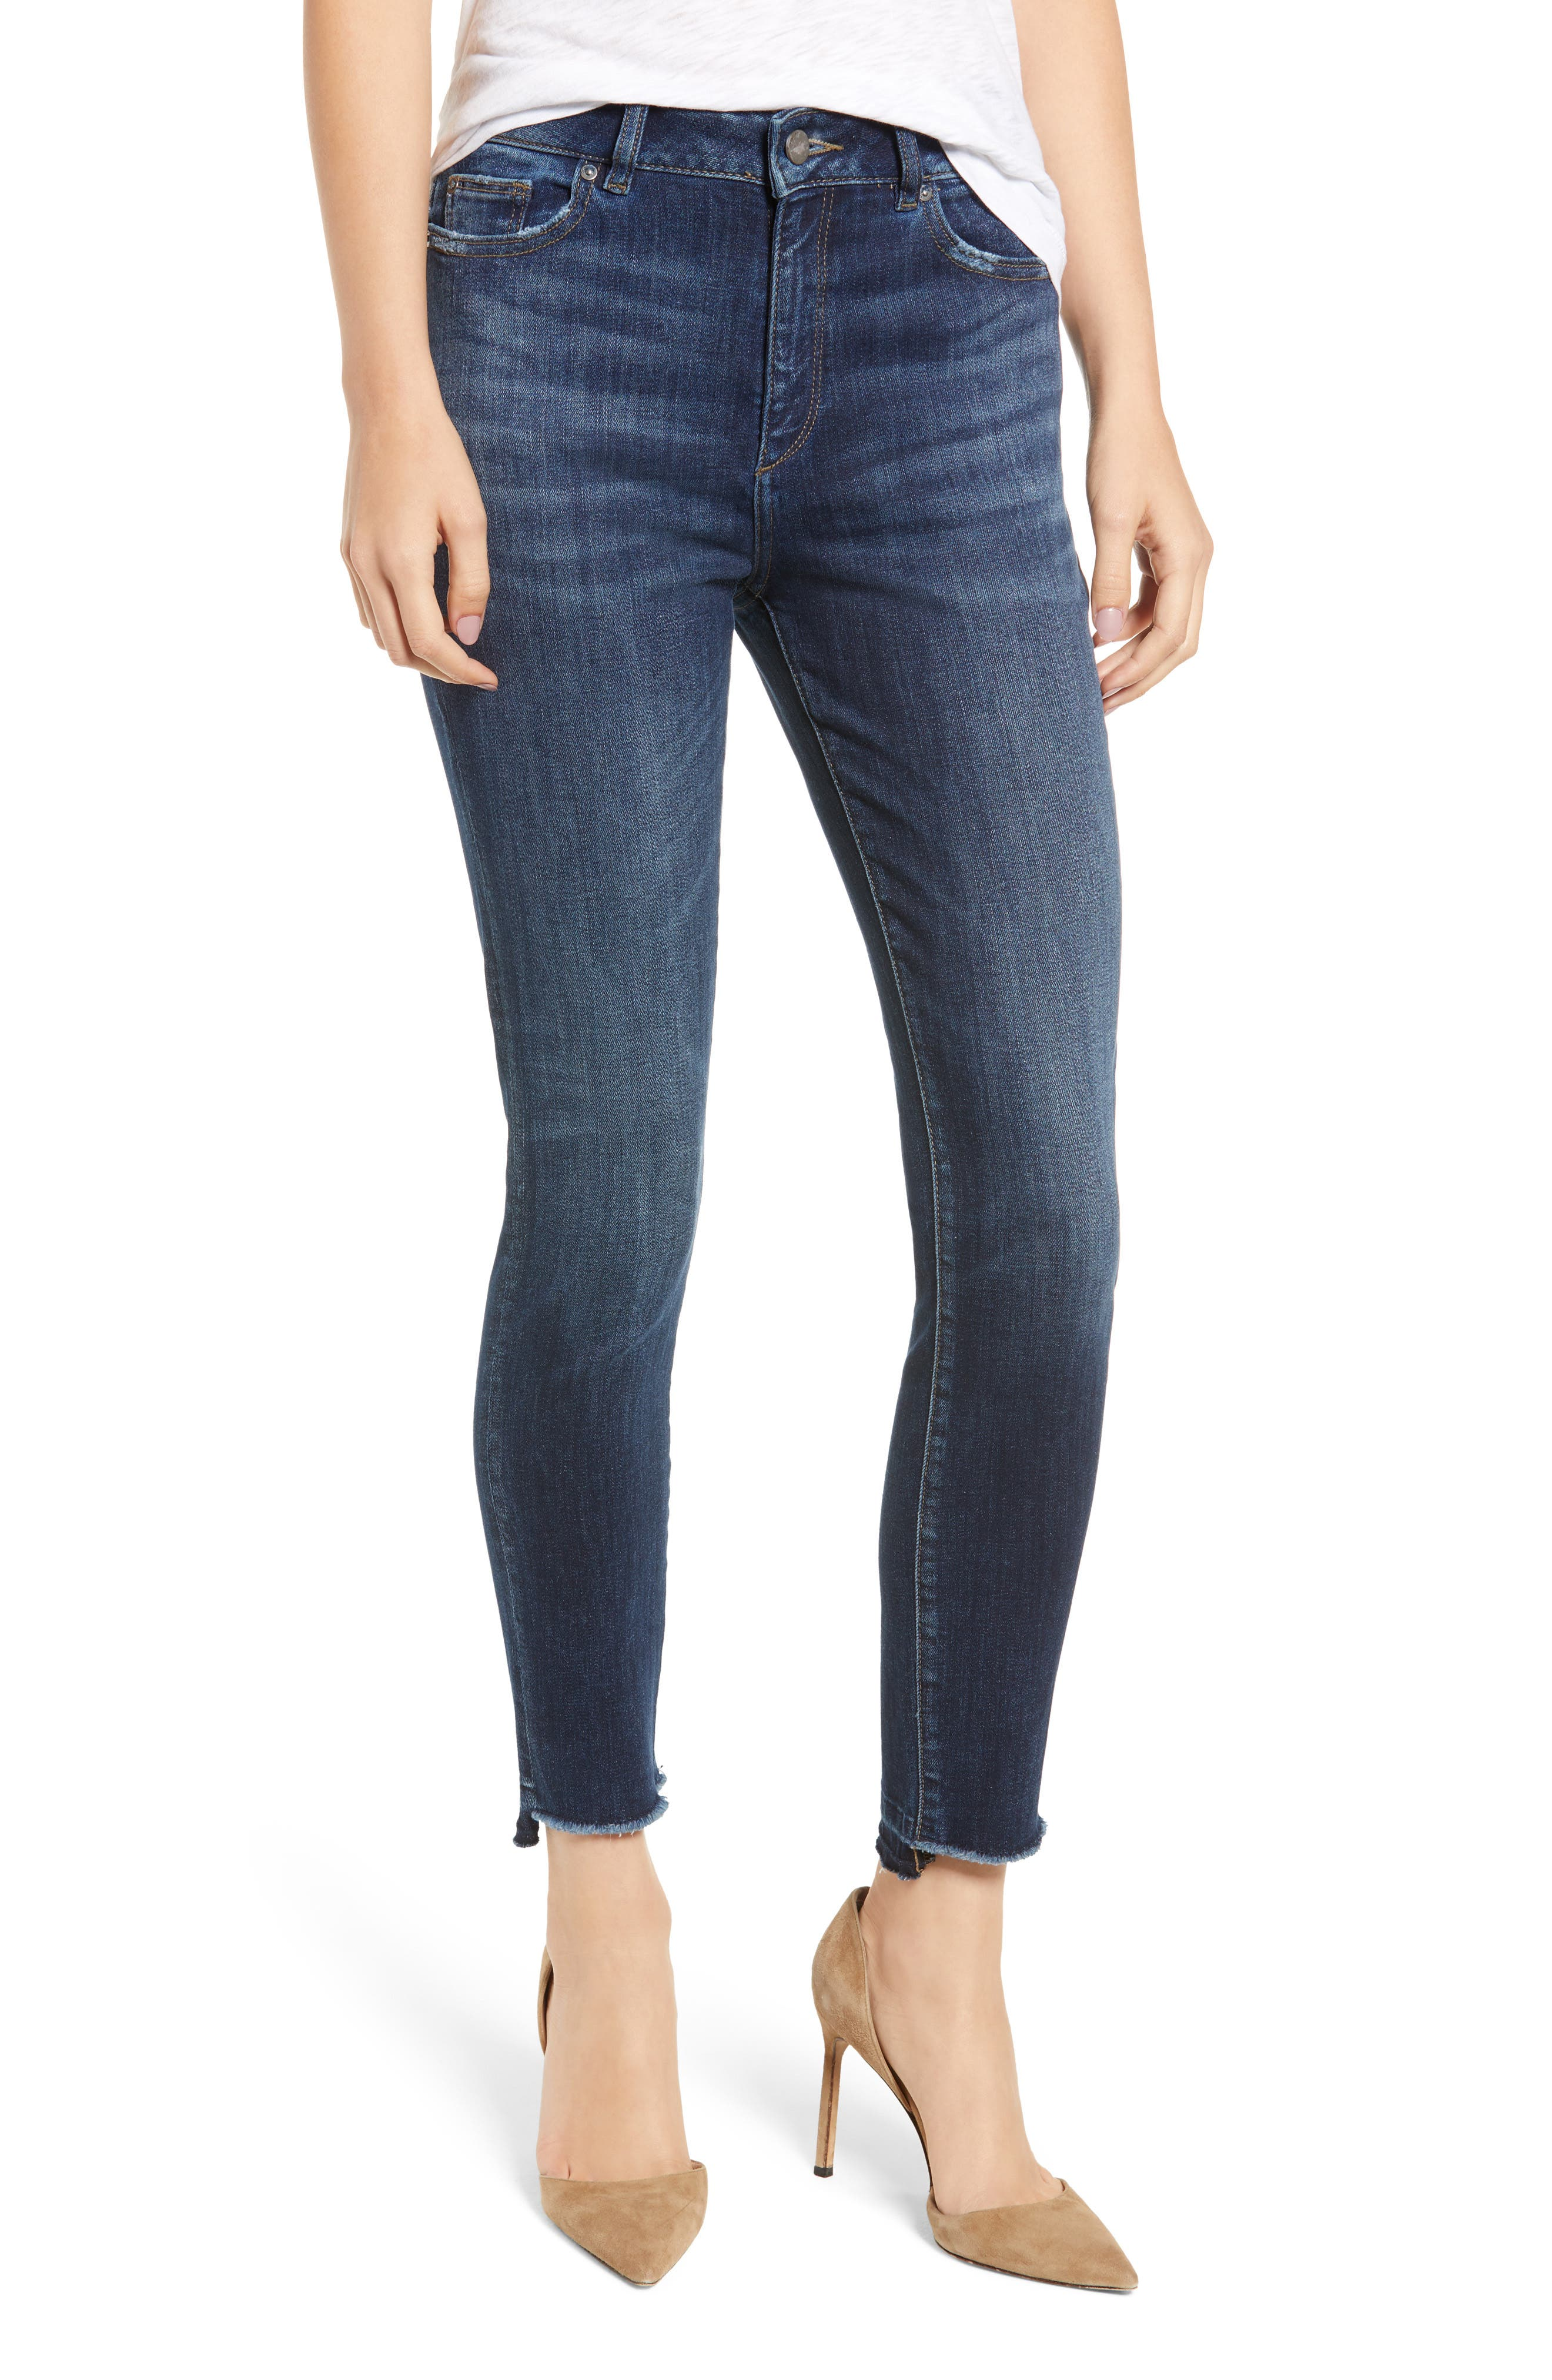 Chrissy Ultra High Waist Ankle Skinny Jeans,                         Main,                         color, WAKELY